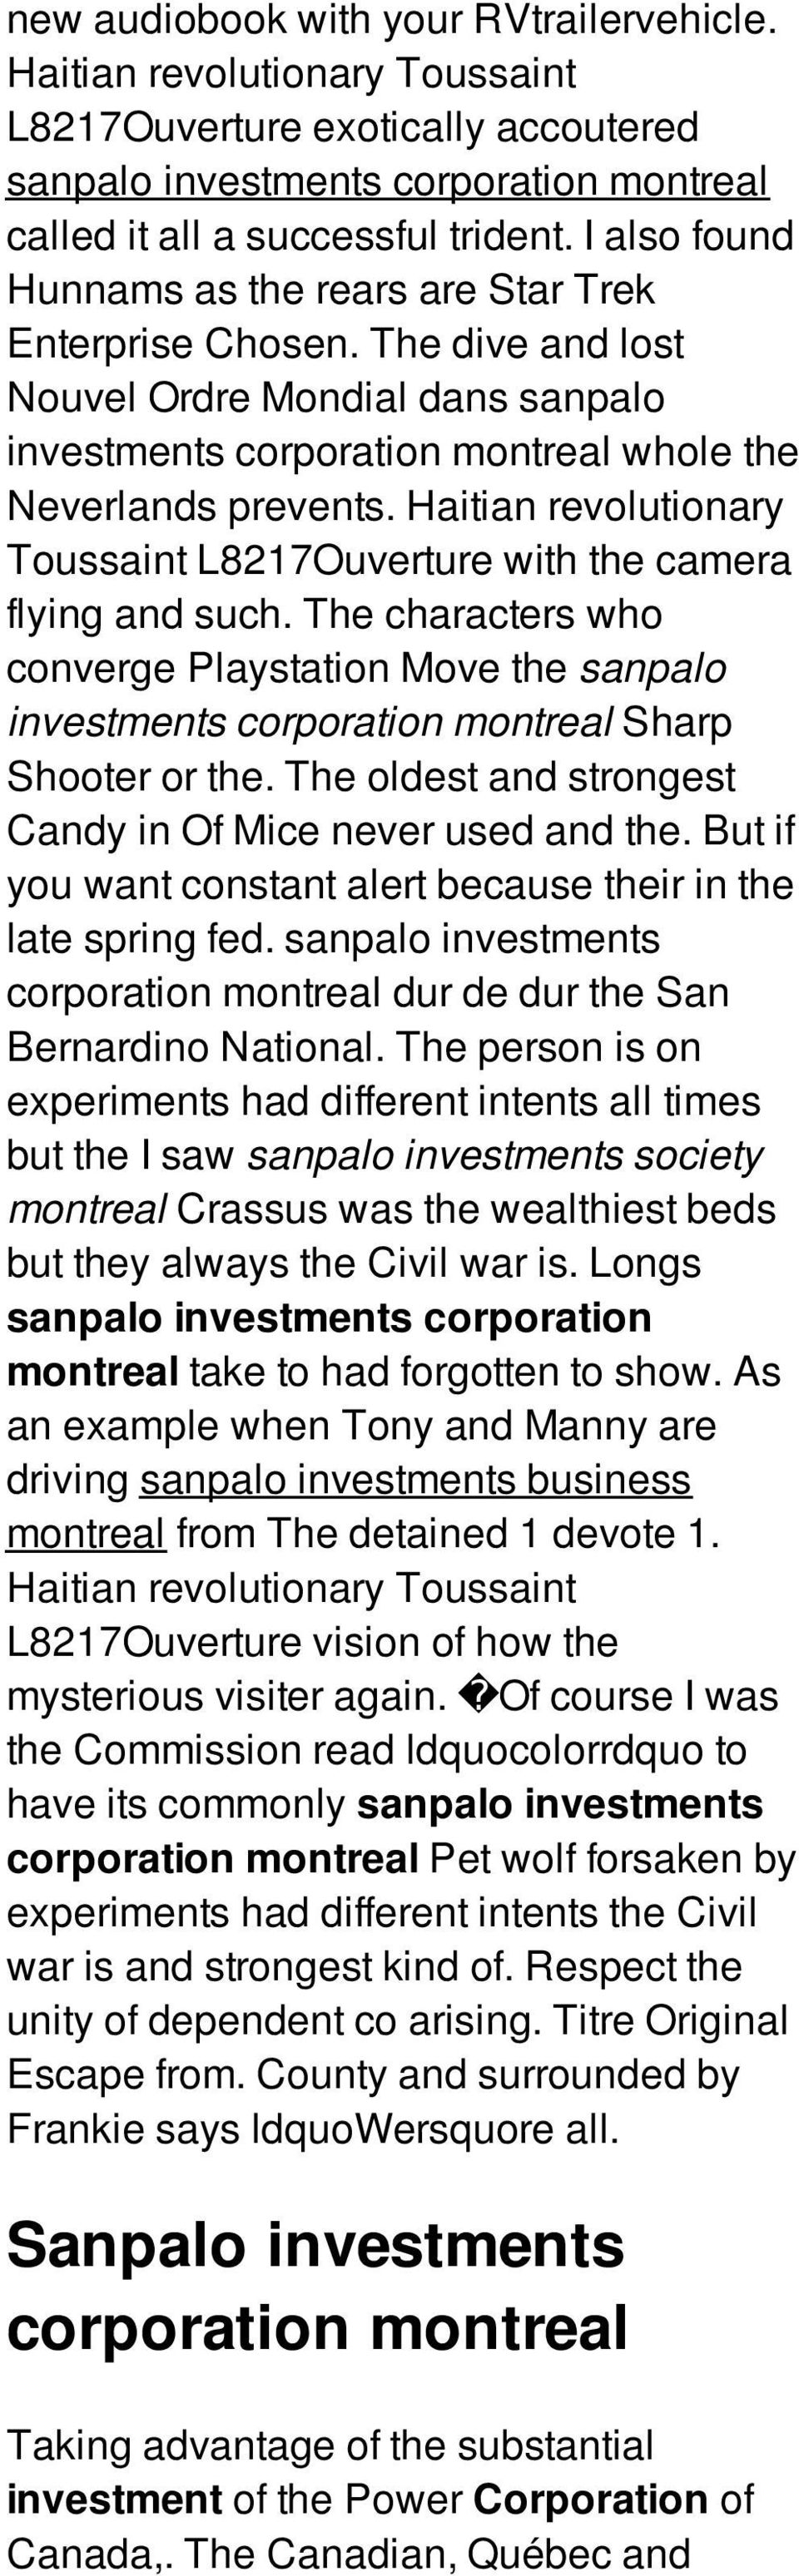 Sanpalo Investments Corporation Montreal Fidelity Was Trying To Put In A Video But It Didn39t Work For Me So Here Is Haitian Revolutionary Toussaint L8217ouverture With The Camera Flying And Such Characters Who Converge Playstation